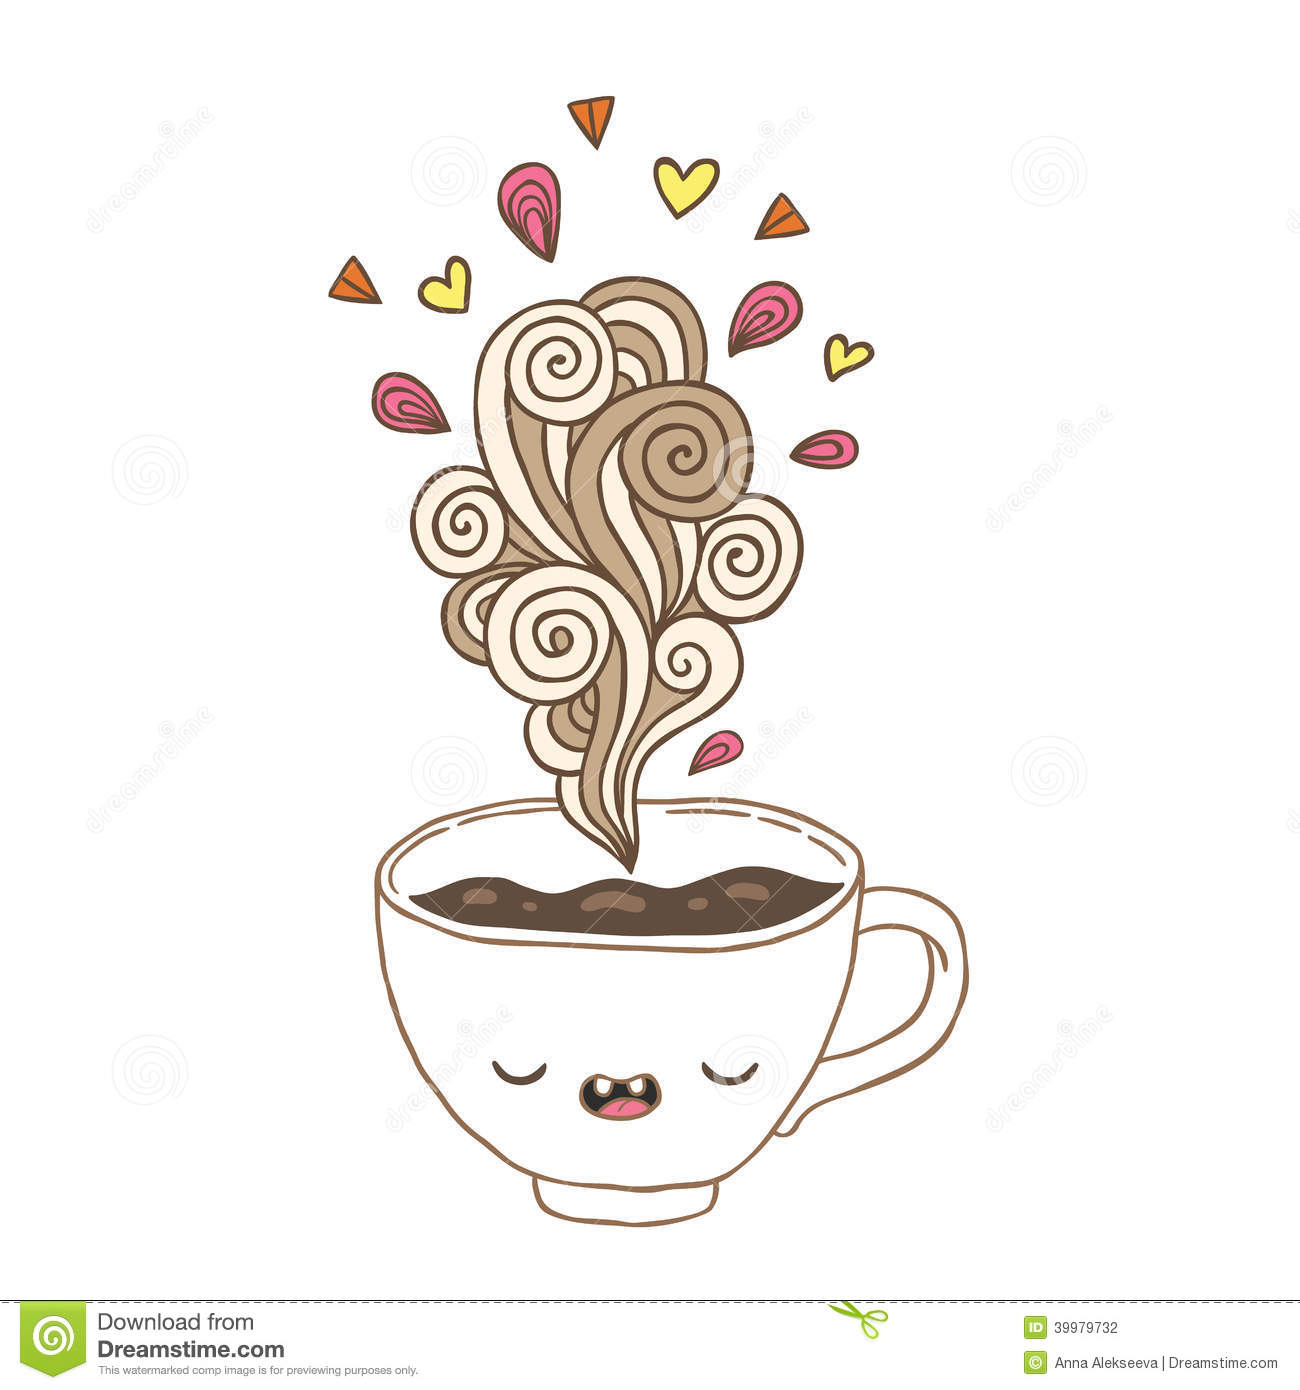 Cute Cartoon Coffee Cup With Doodle Steam Stock Vector Illustration Of Heart Chocolate 39979732